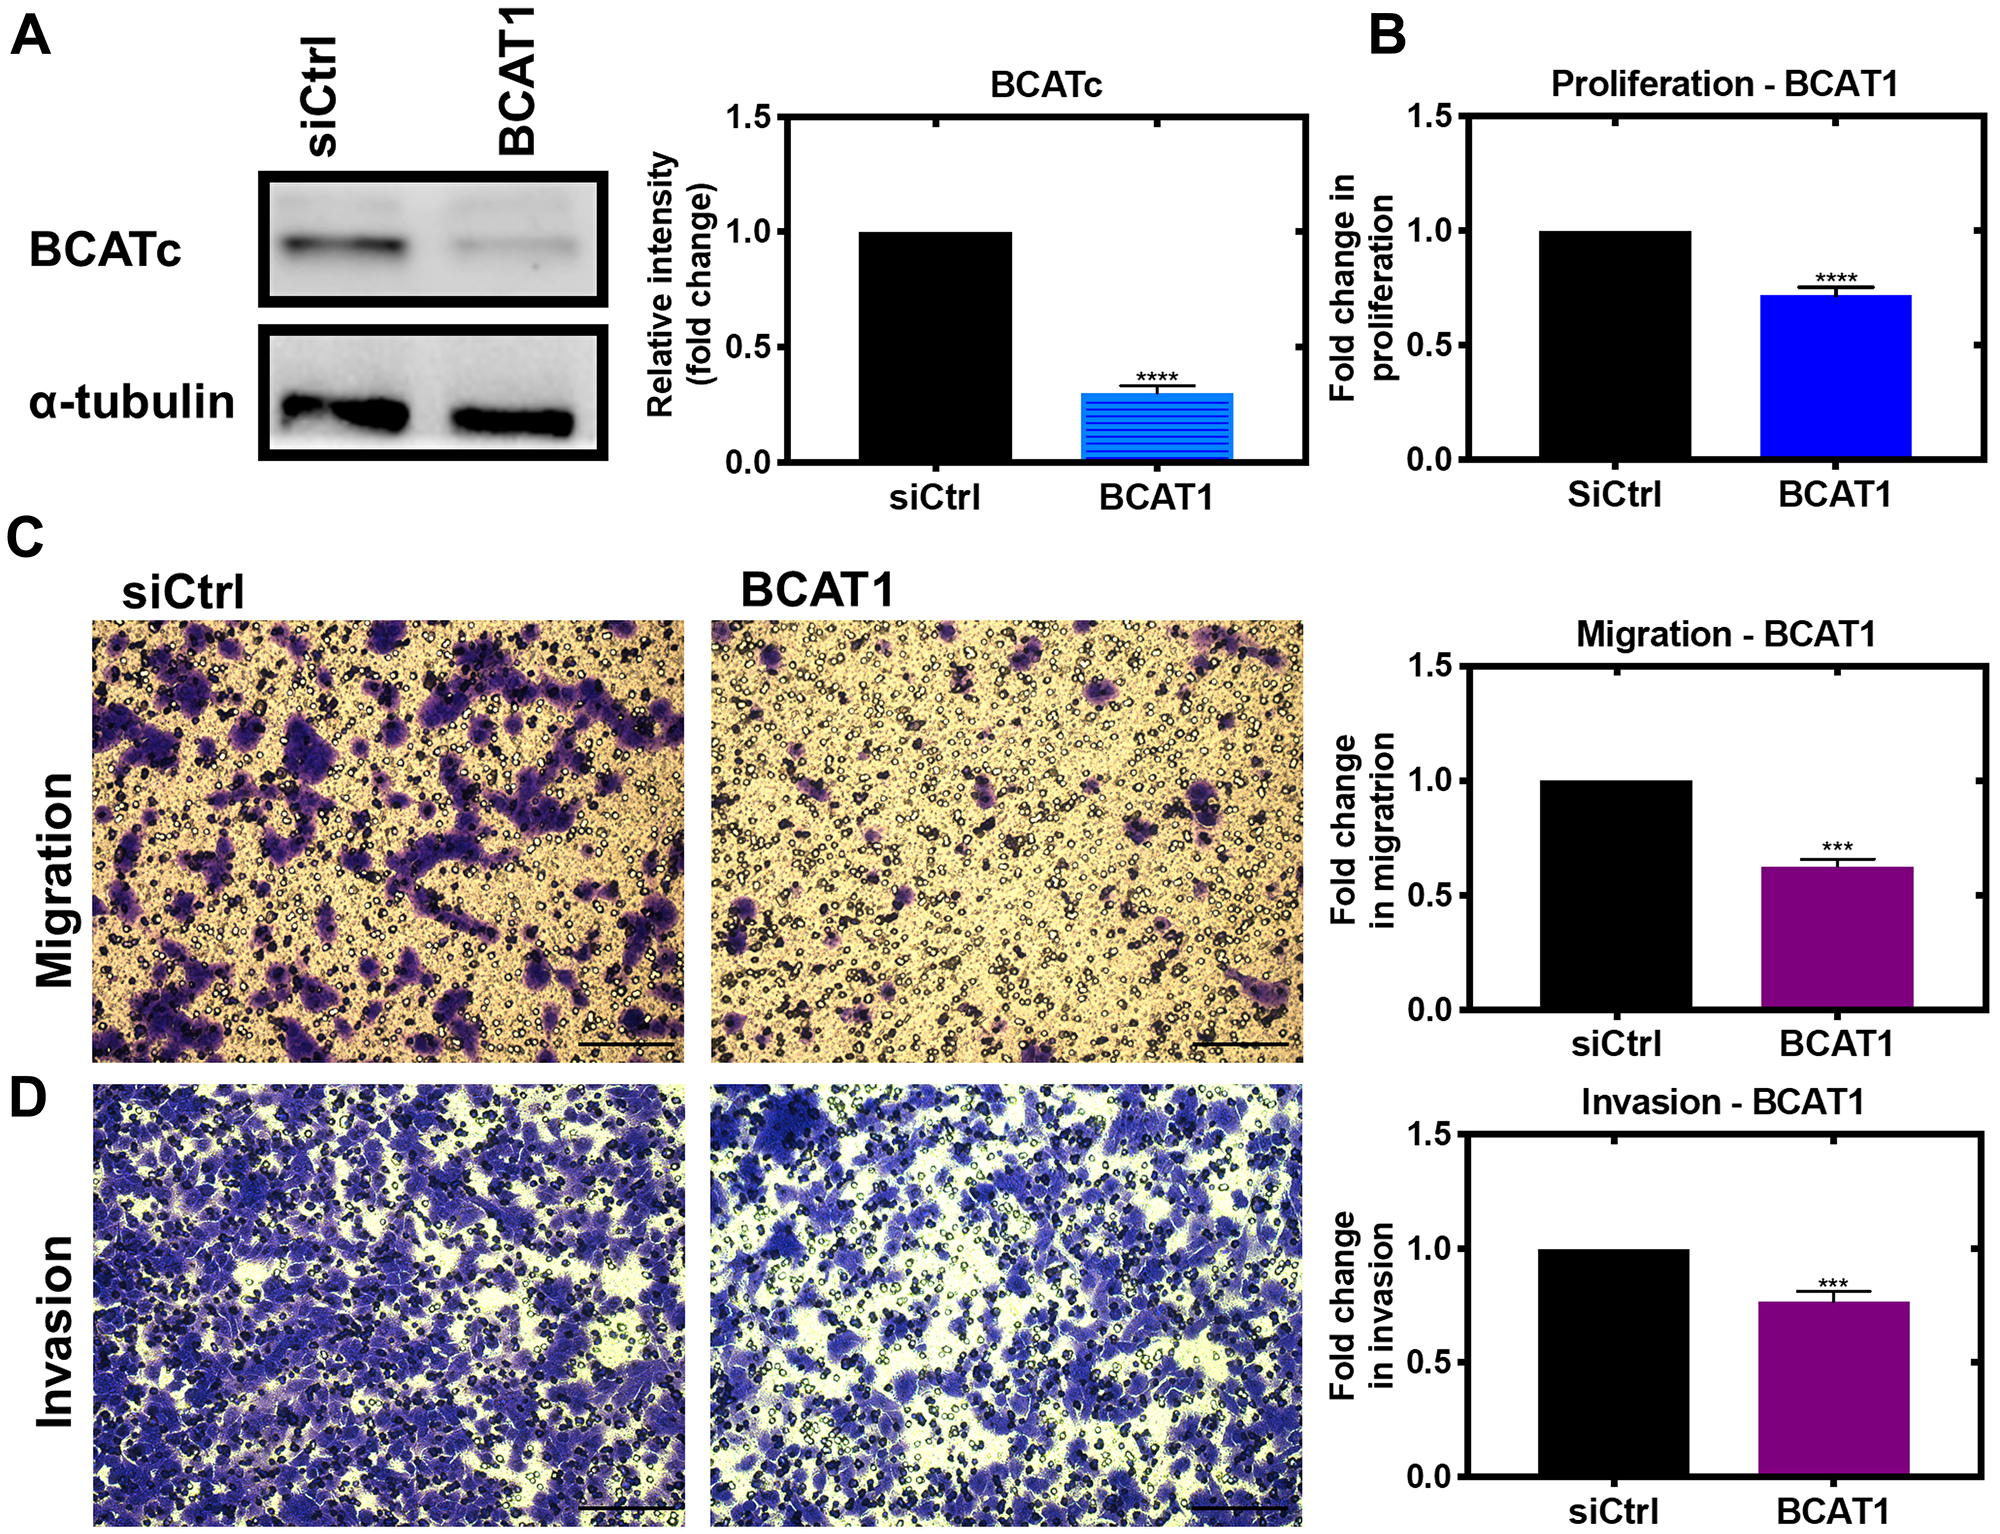 Knockdown of BCAT1 significantly reduces proliferation, migration and invasion of MDA-MB-231 cells.